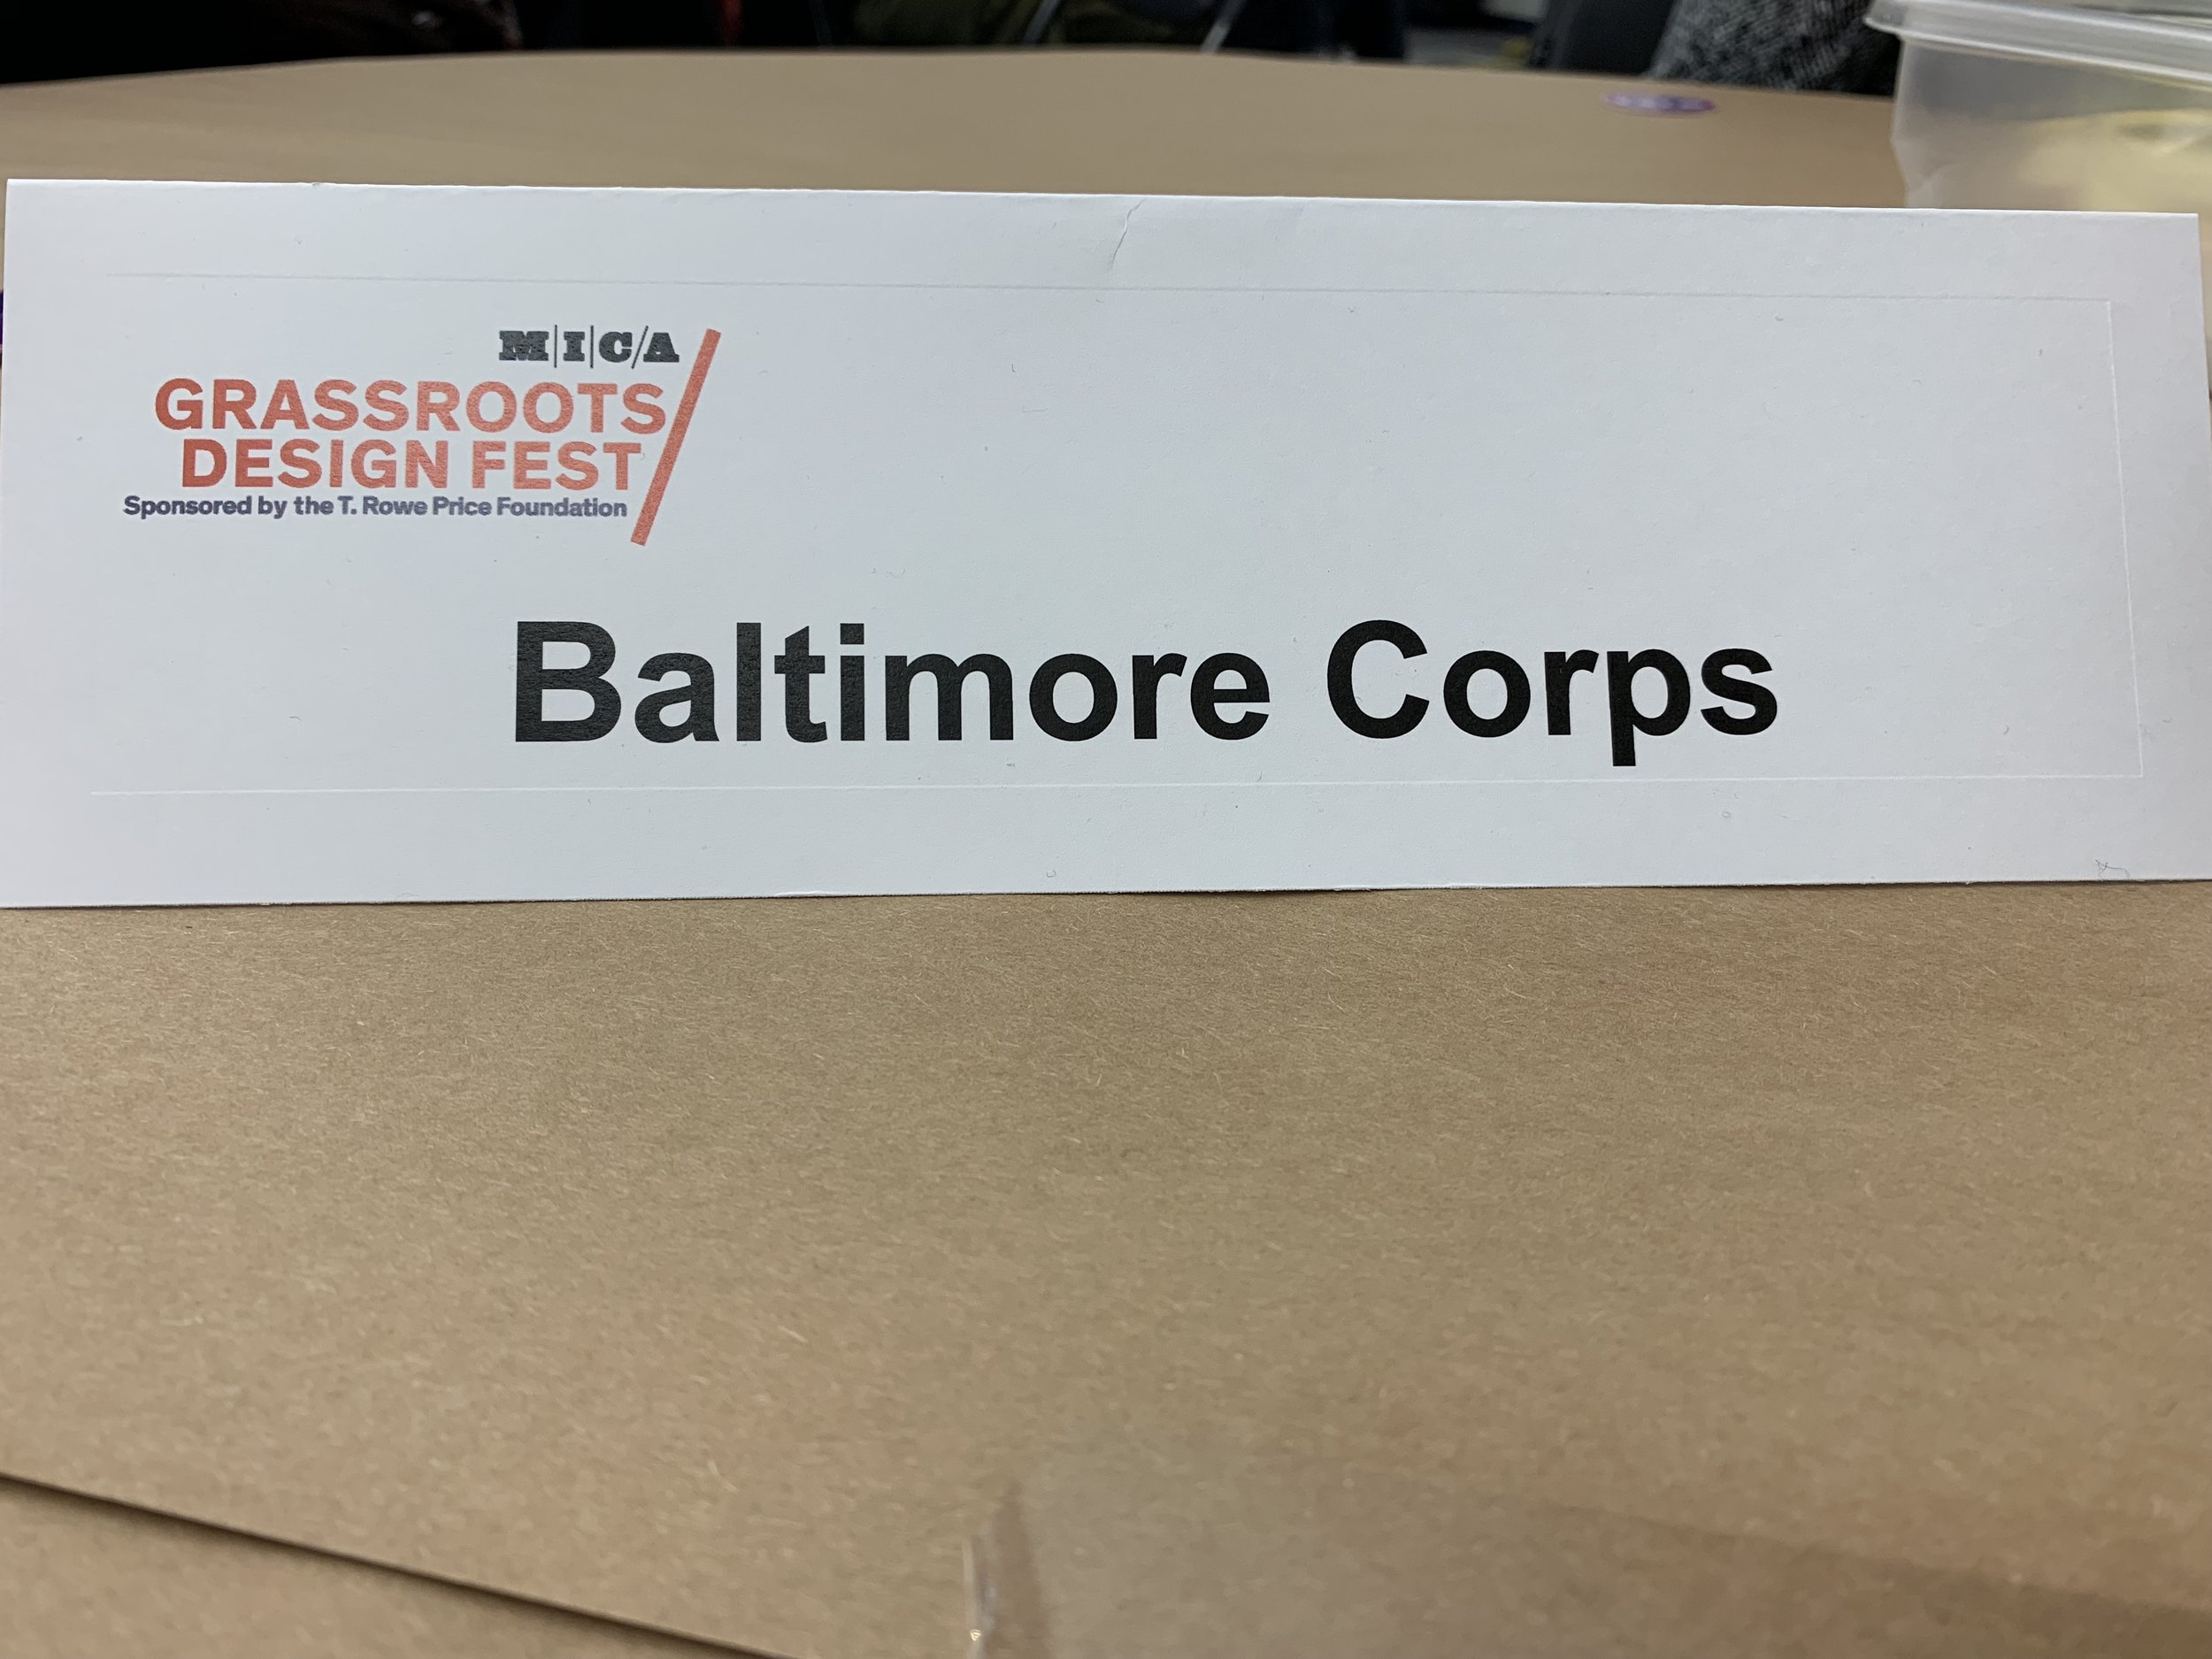 Baltimore Corps was chosen to participate in  MICA's 2nd Annual Design Fest  this month.